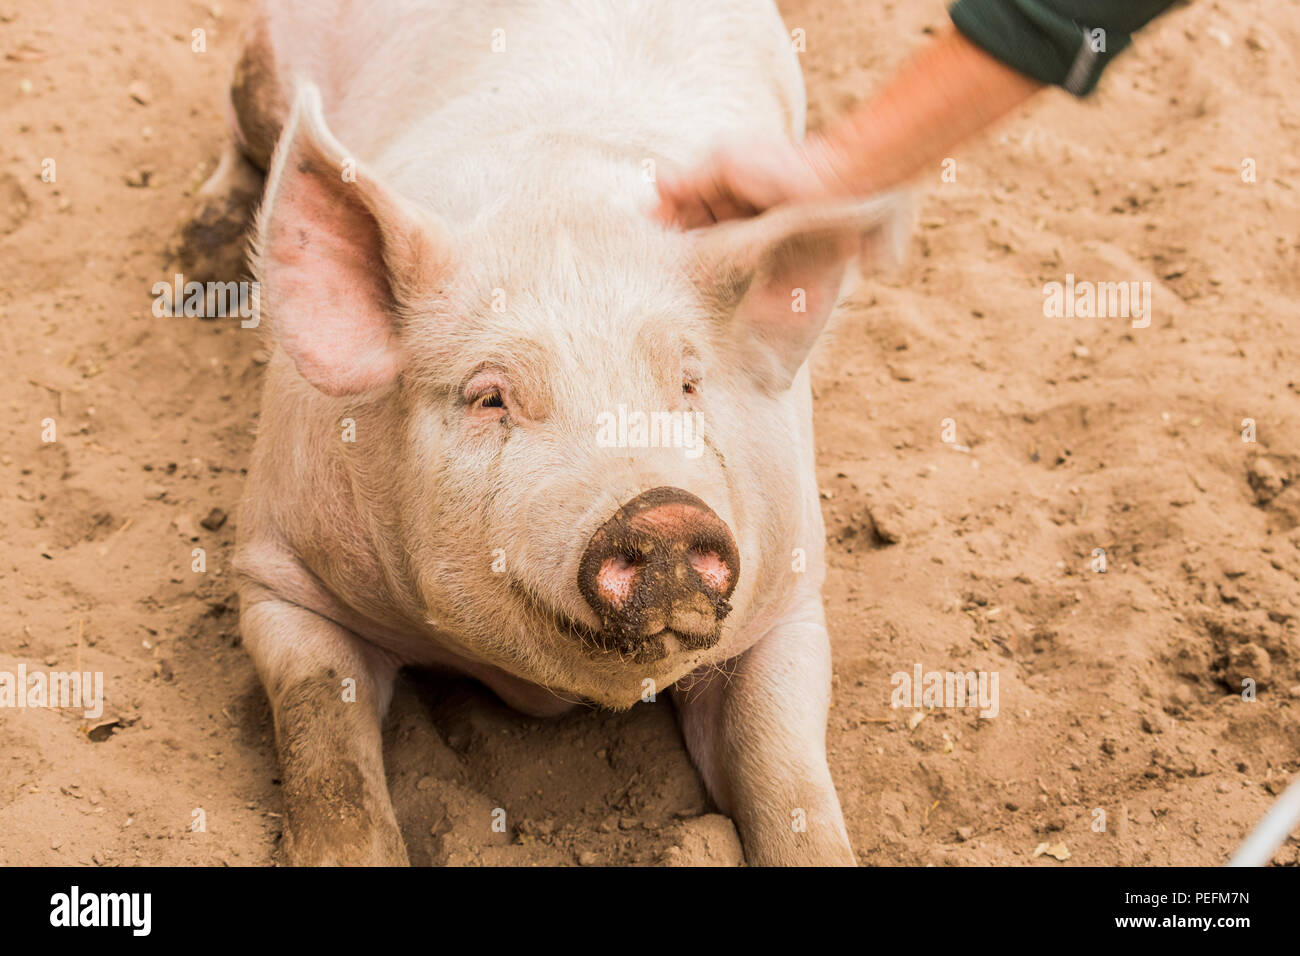 Close up head shot of gentle sweet smiling single dirty young domestic pink happy pig with muddy face, big ears, well cared for and healthy - Stock Image